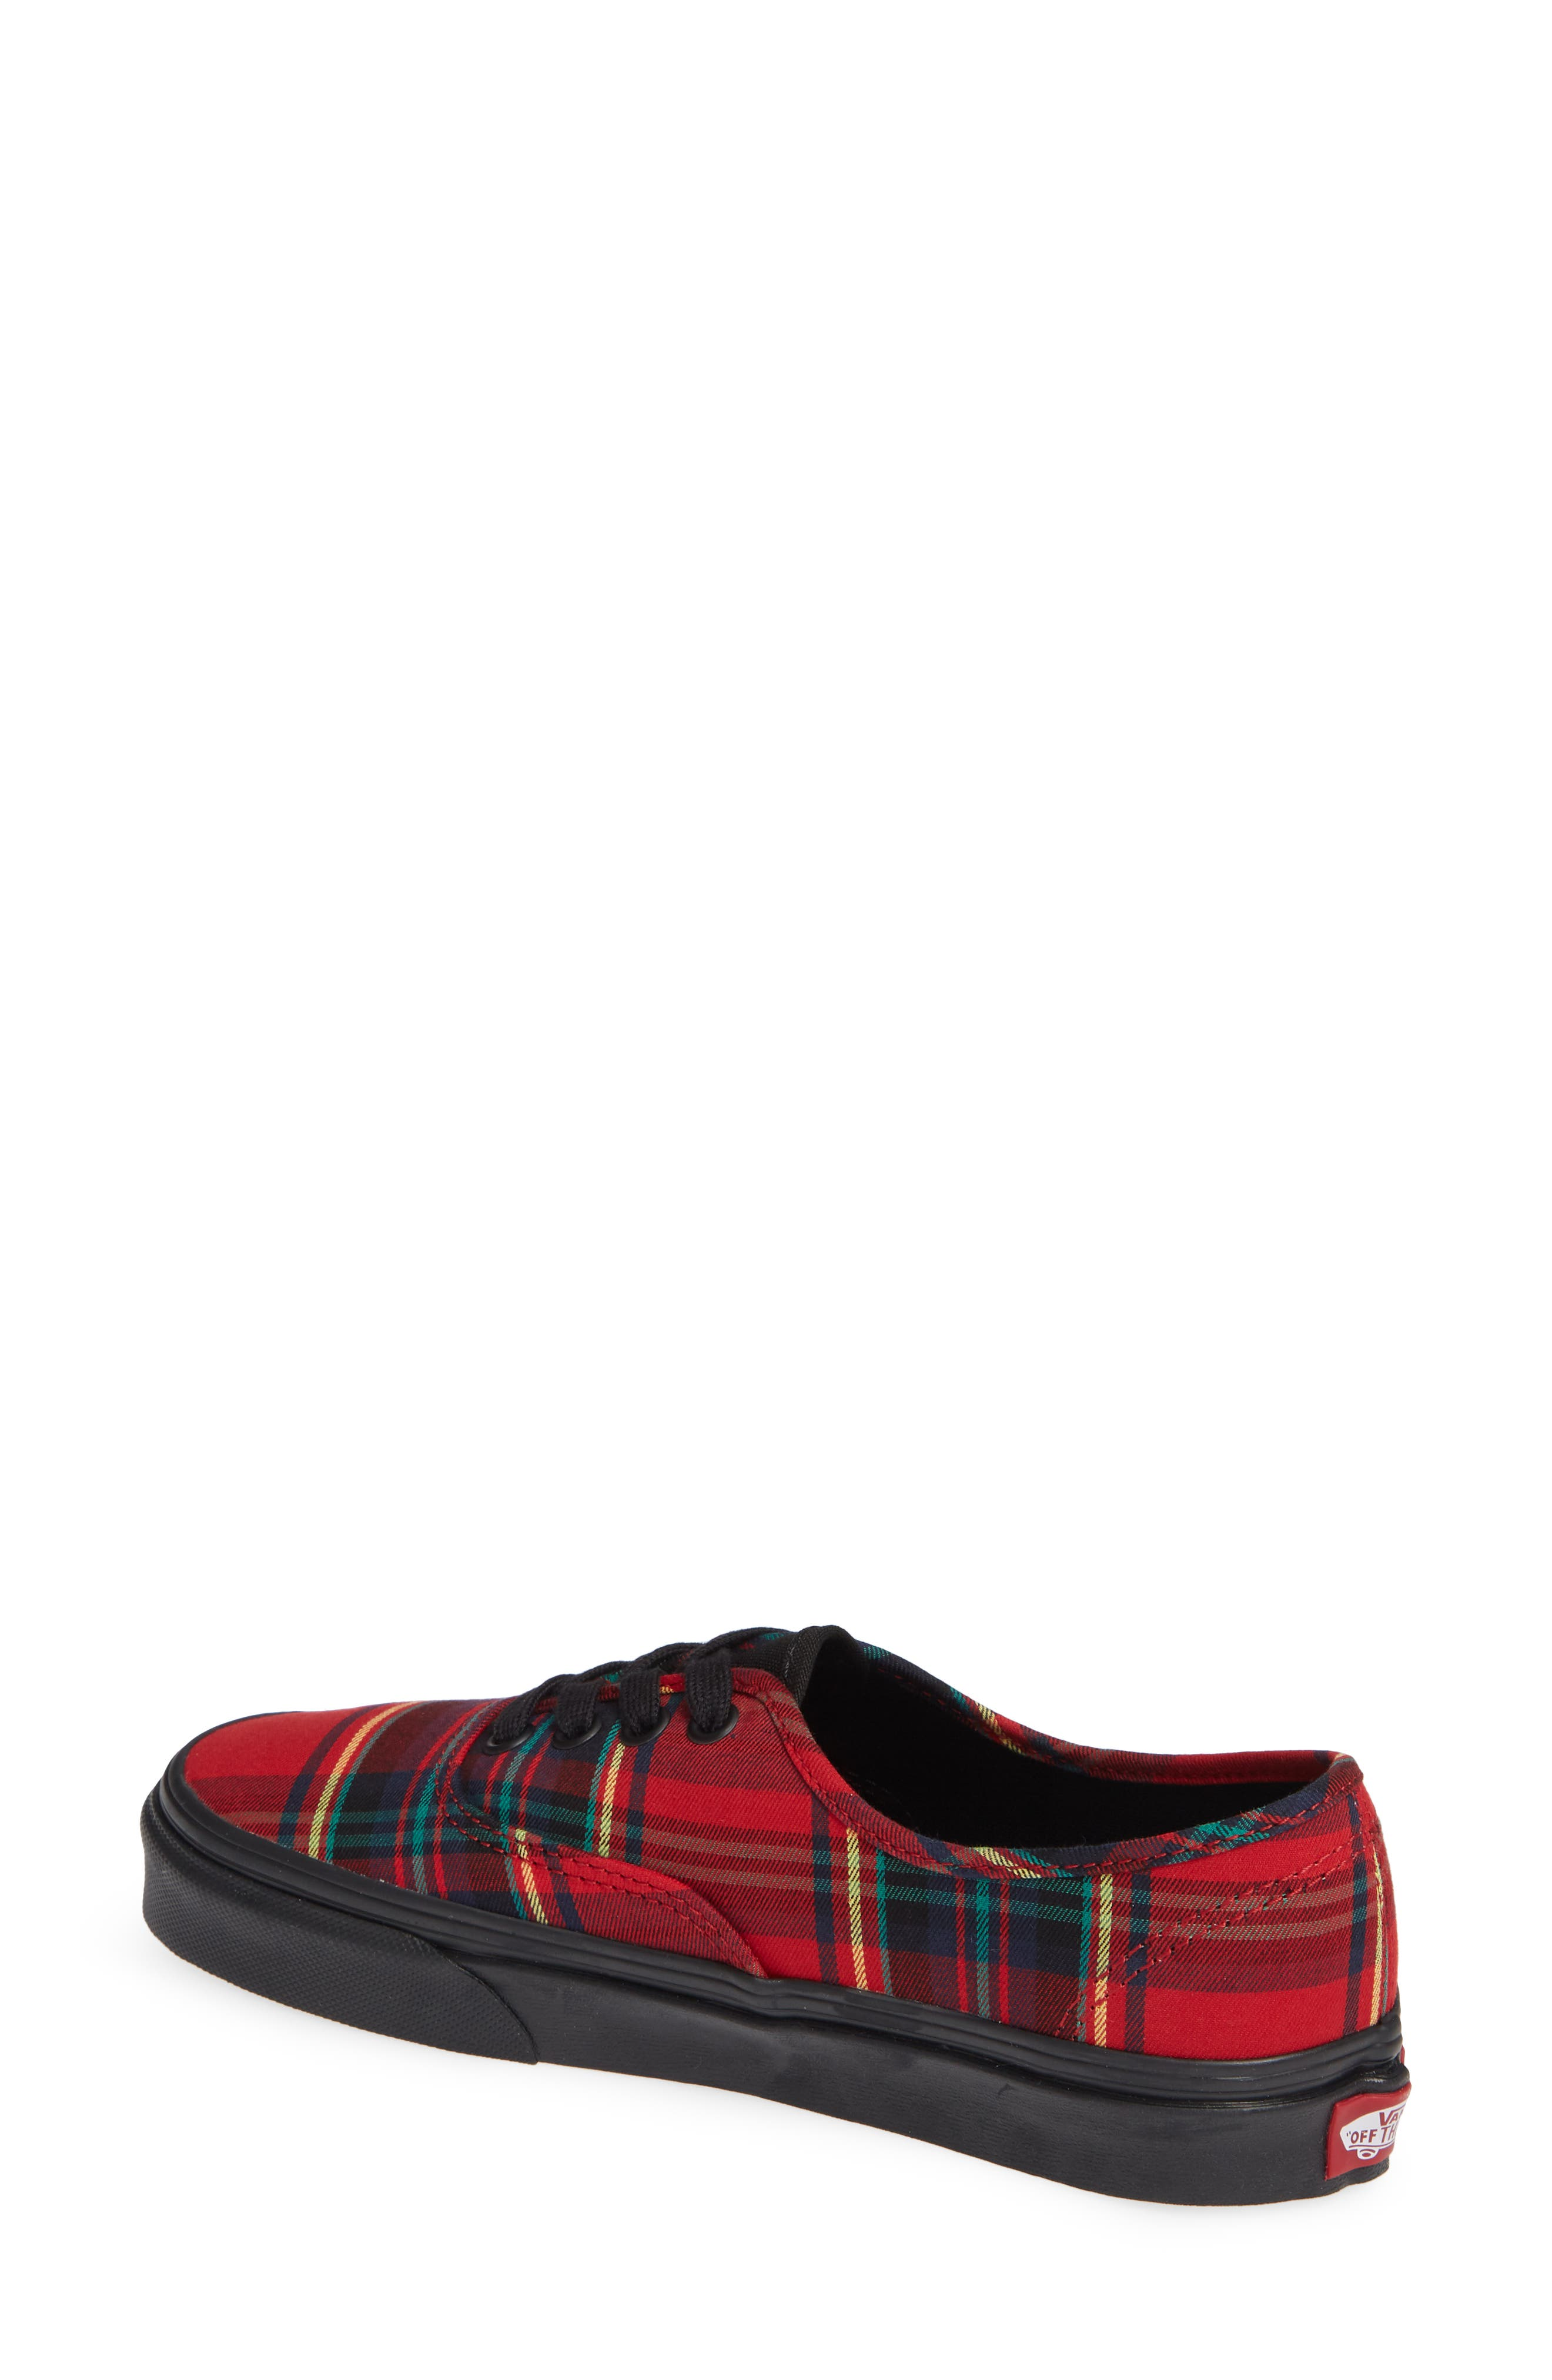 'Authentic' Sneaker,                             Alternate thumbnail 2, color,                             Plaid Mix Red